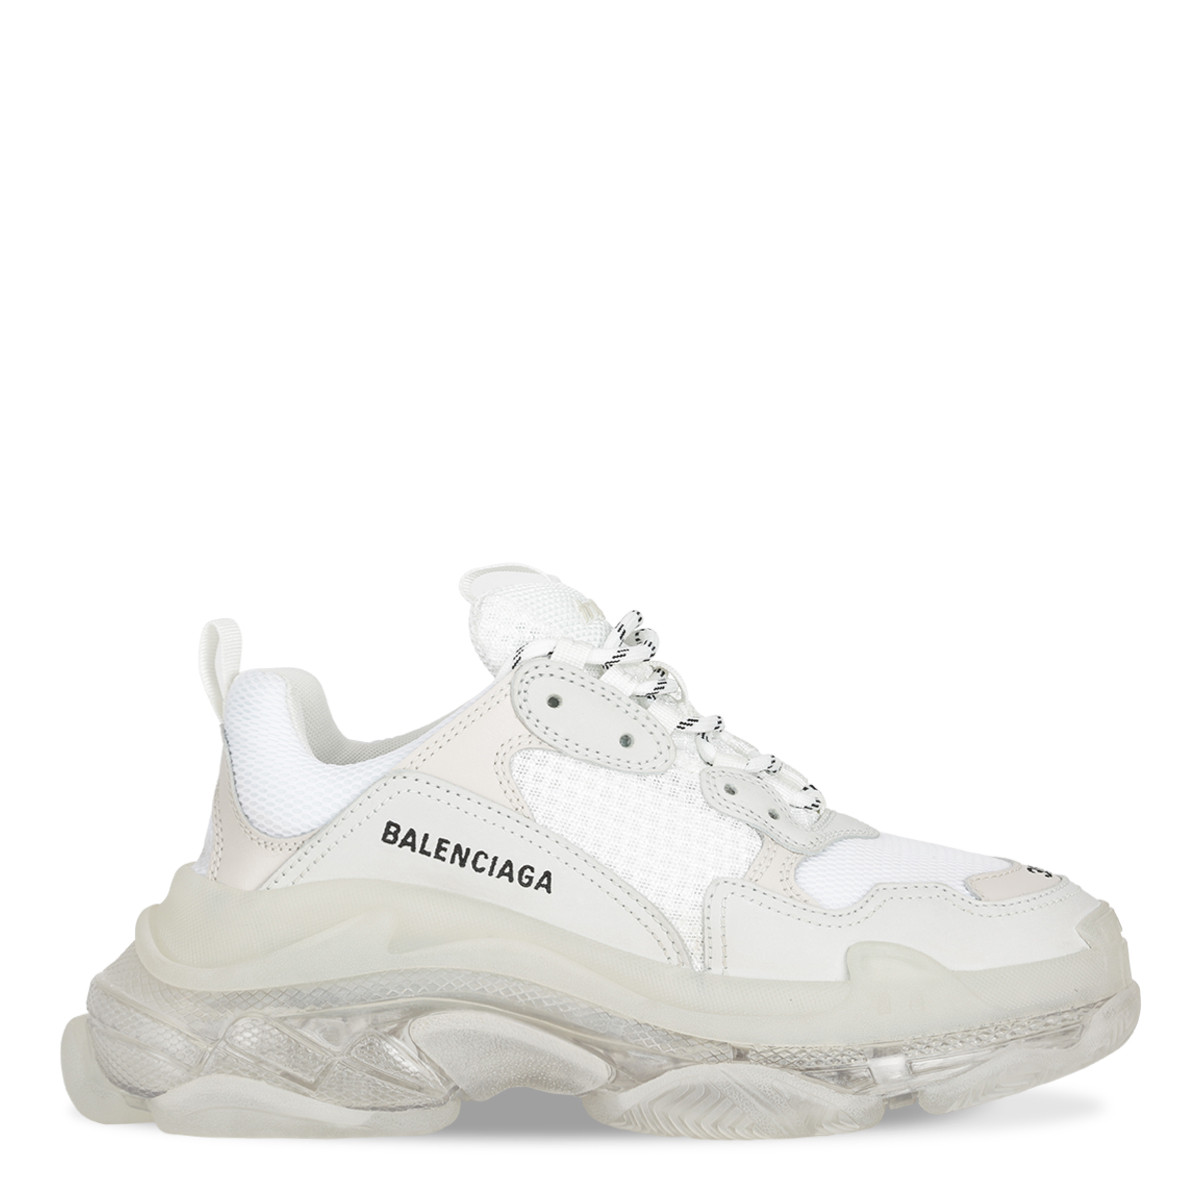 balenciaga white sneakers